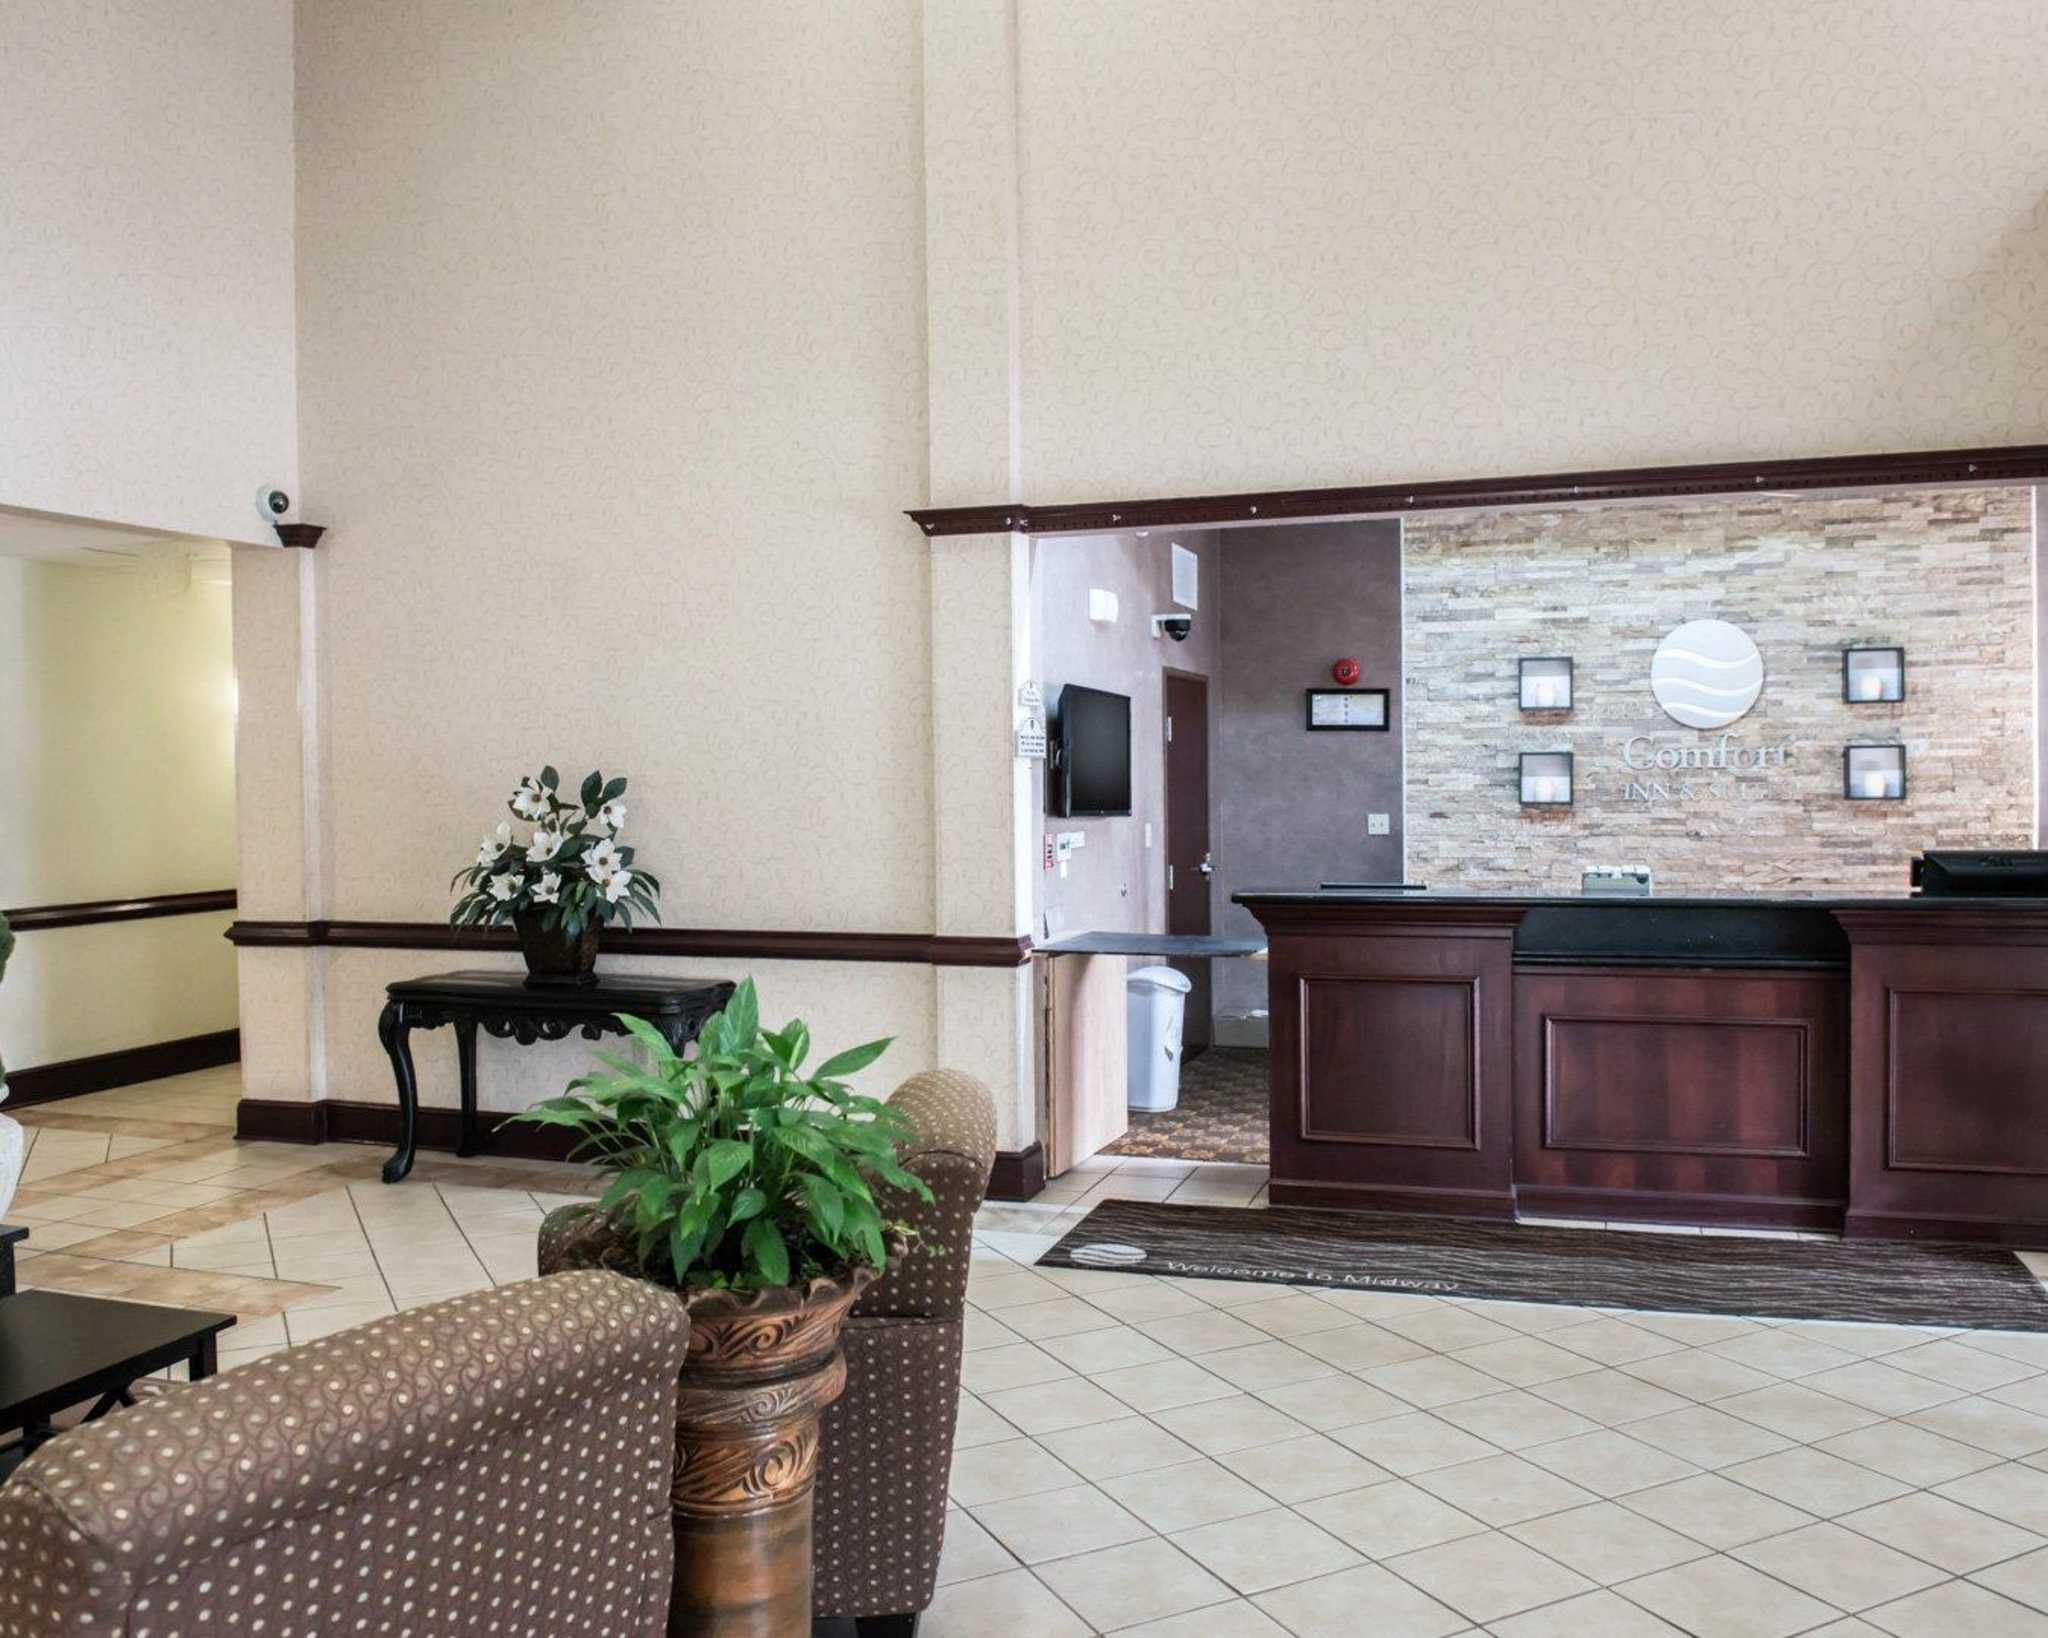 Comfort Inn & Suites Midway - Tallahassee West image 15